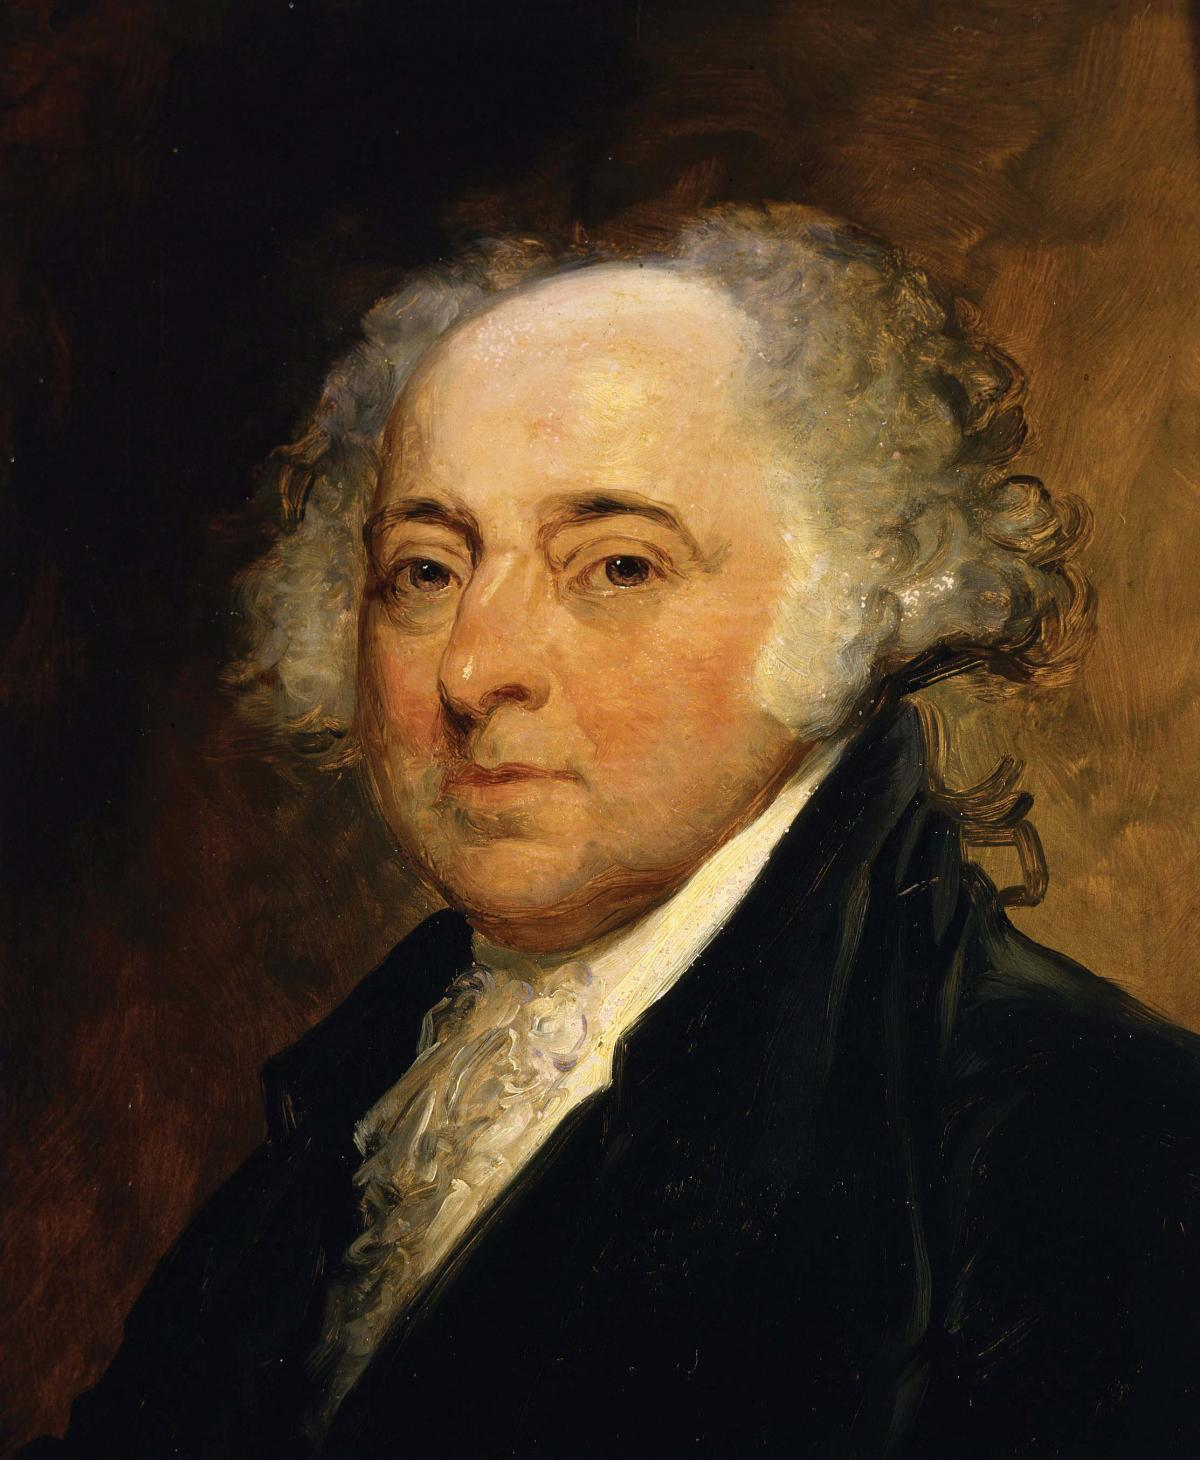 John Adams in a dark suit, head and shoulders portrait on a brown background